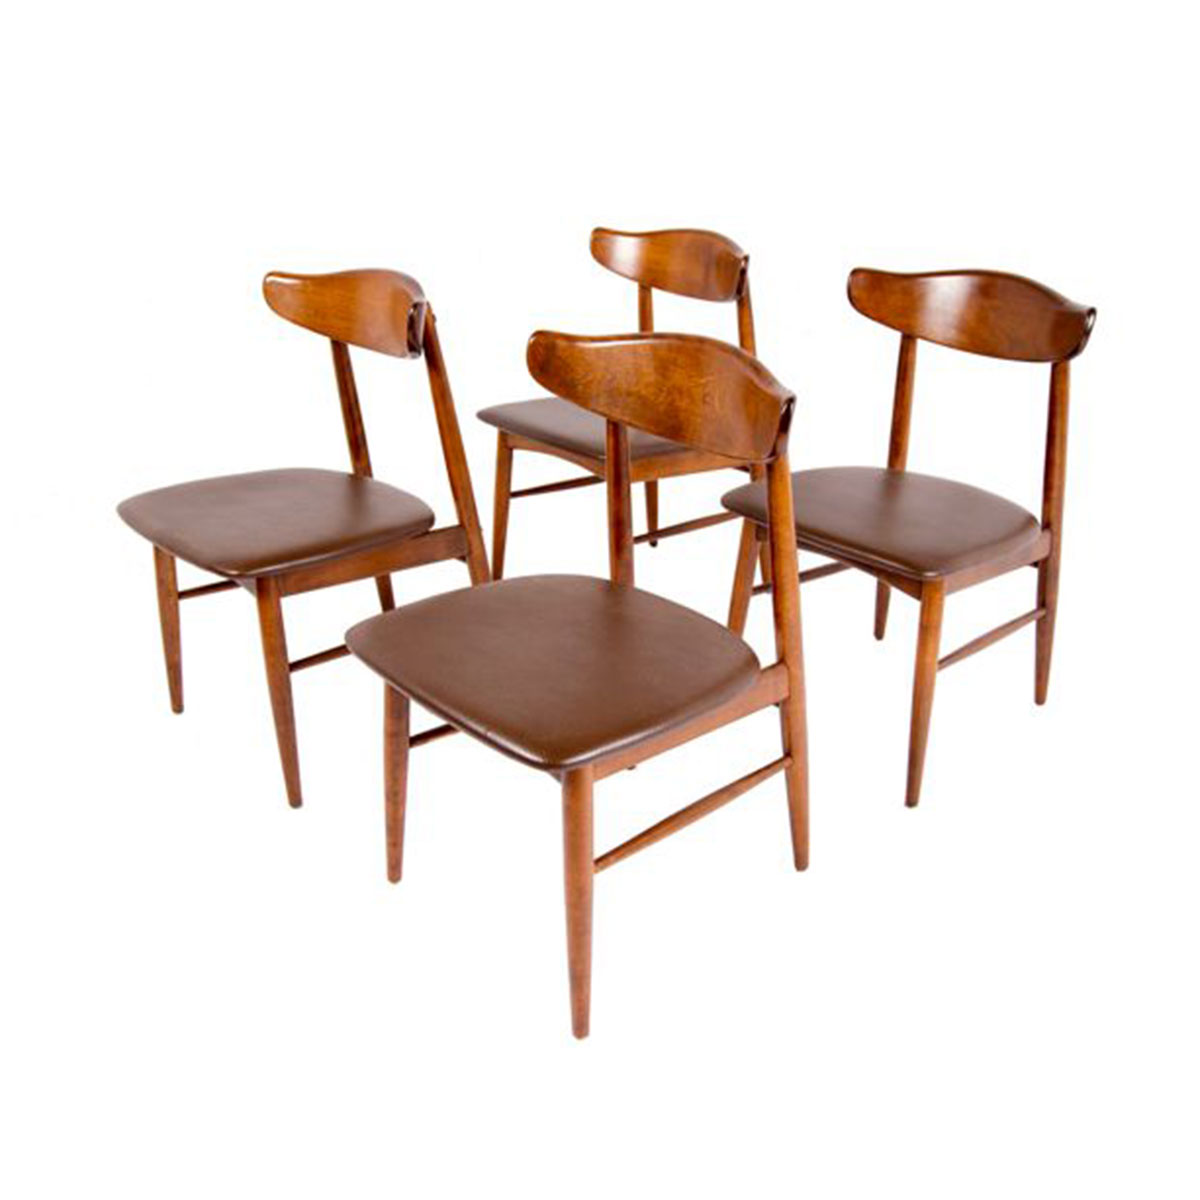 Just Reupholstered in Dark Brown – Set of 4 MCM Walnut Dining Chairs